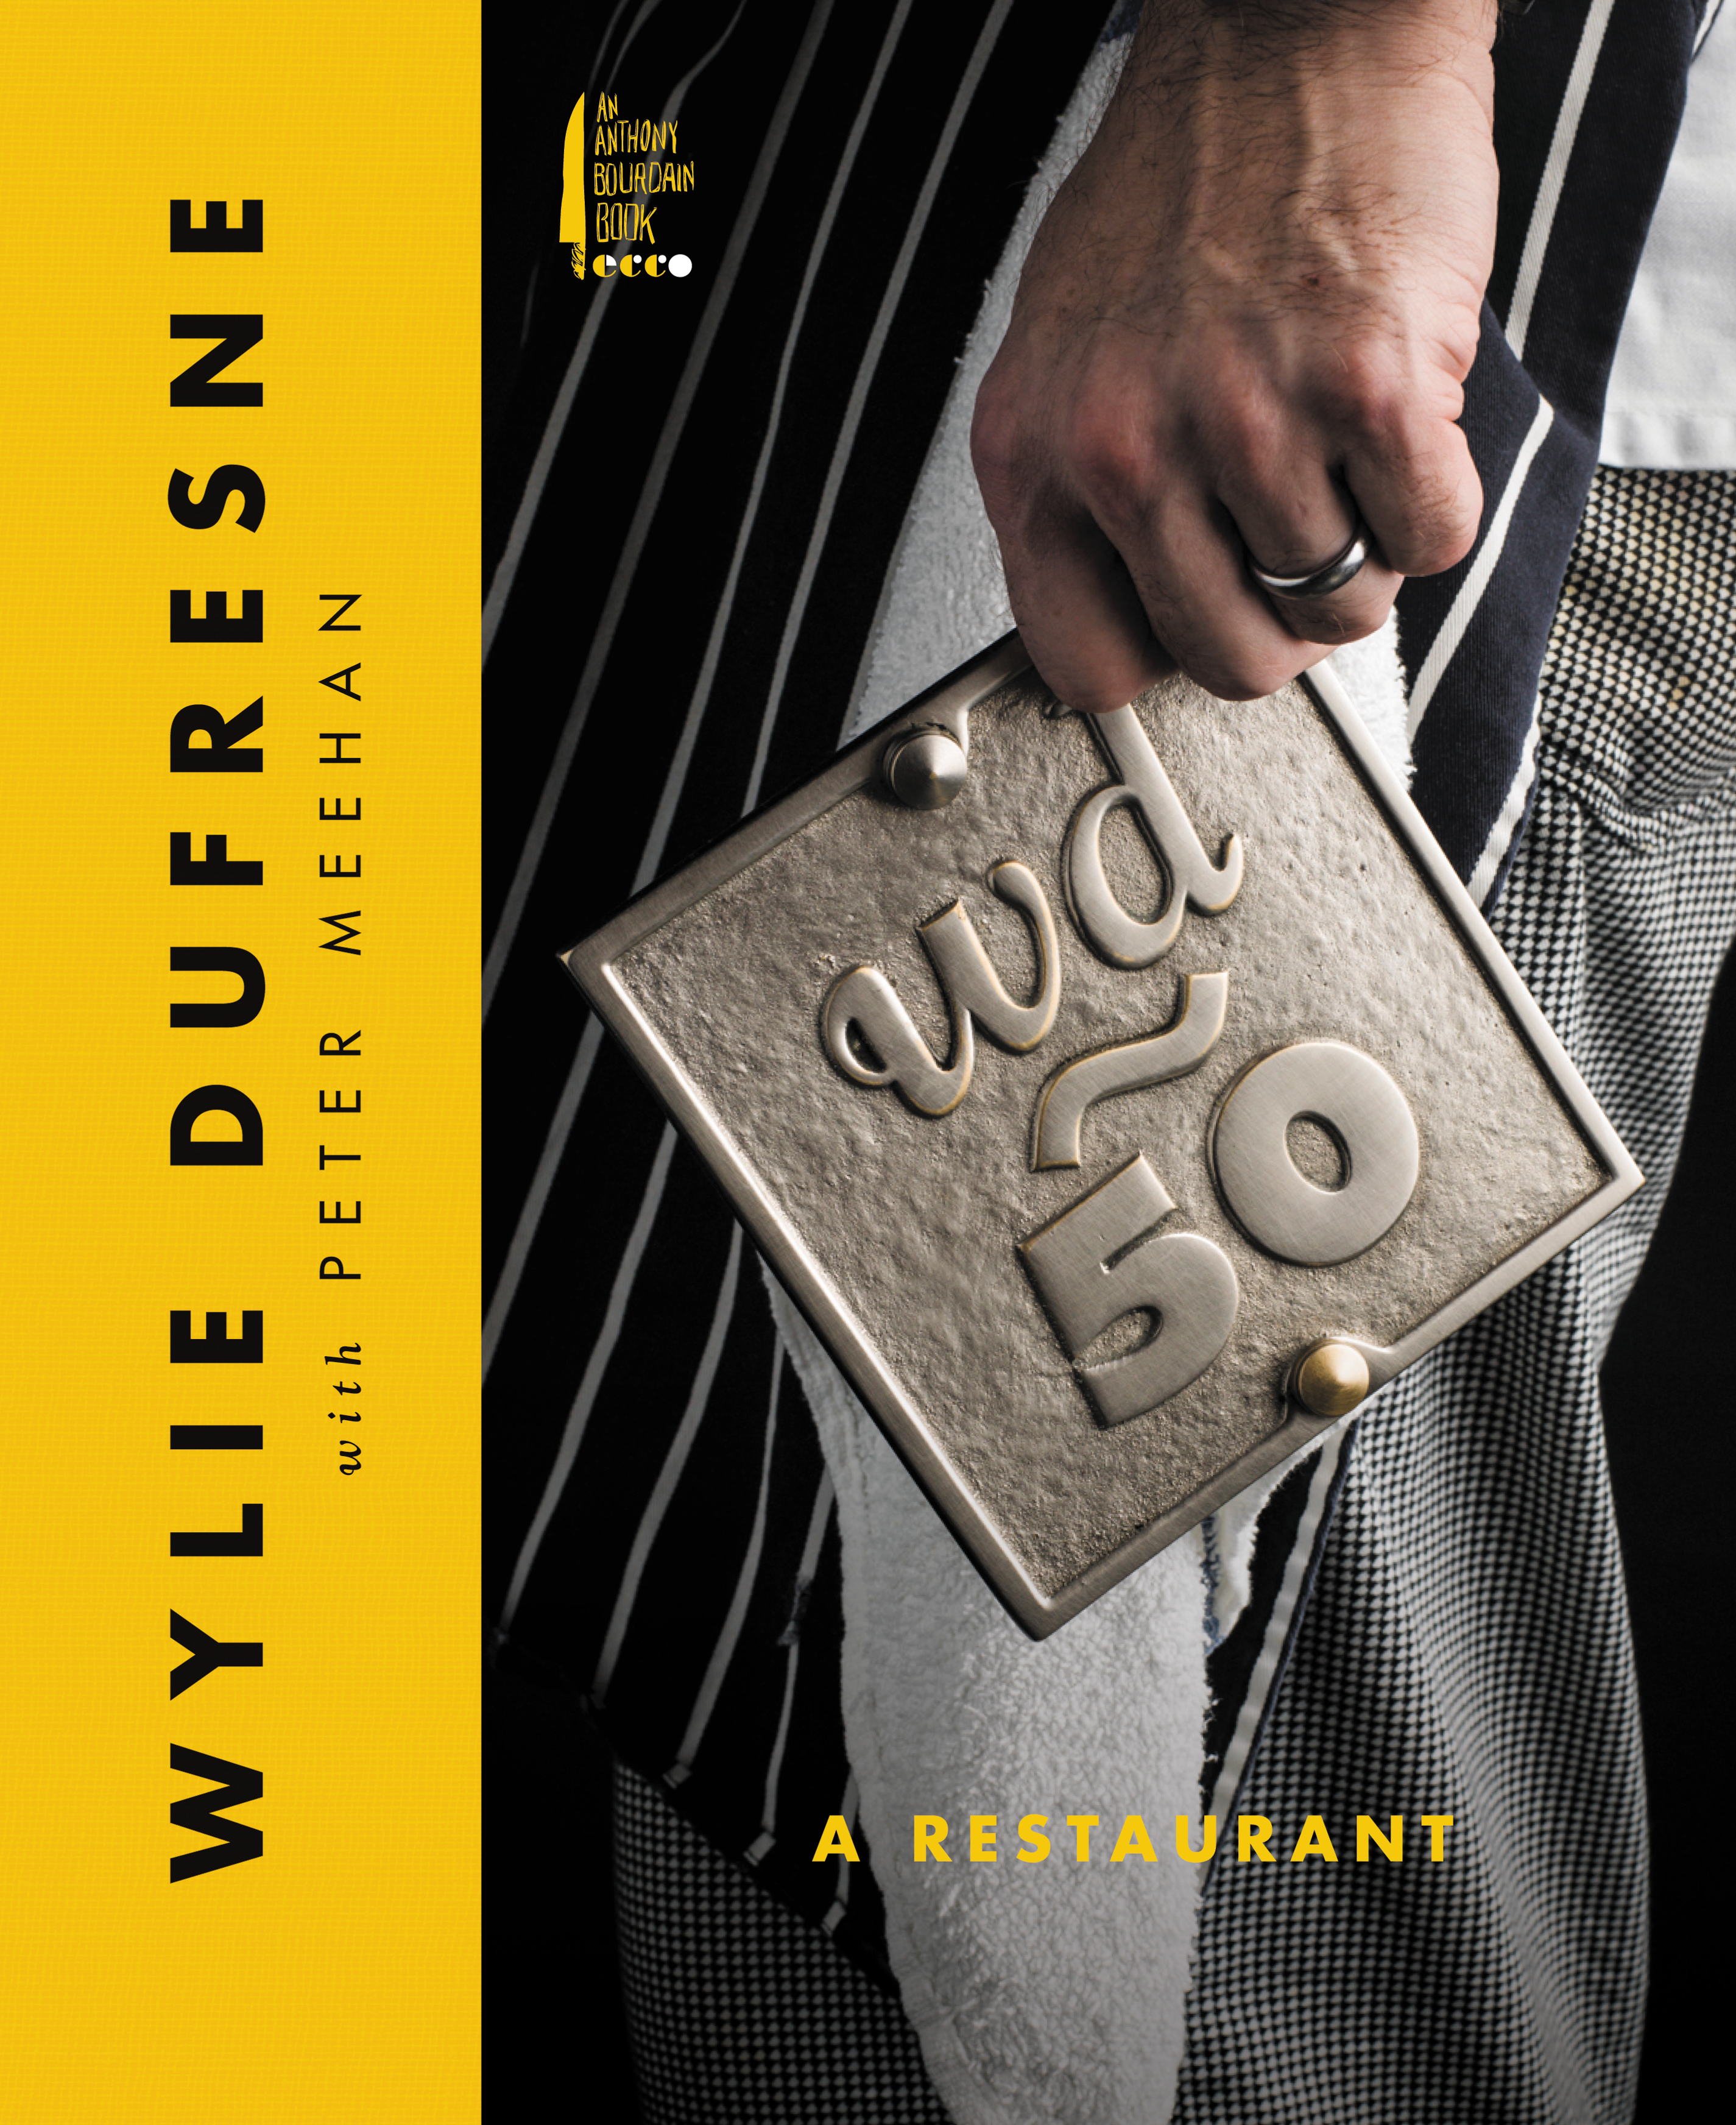 wd~50: The Cookbook by Wylie Dufresne — Public Book Signing